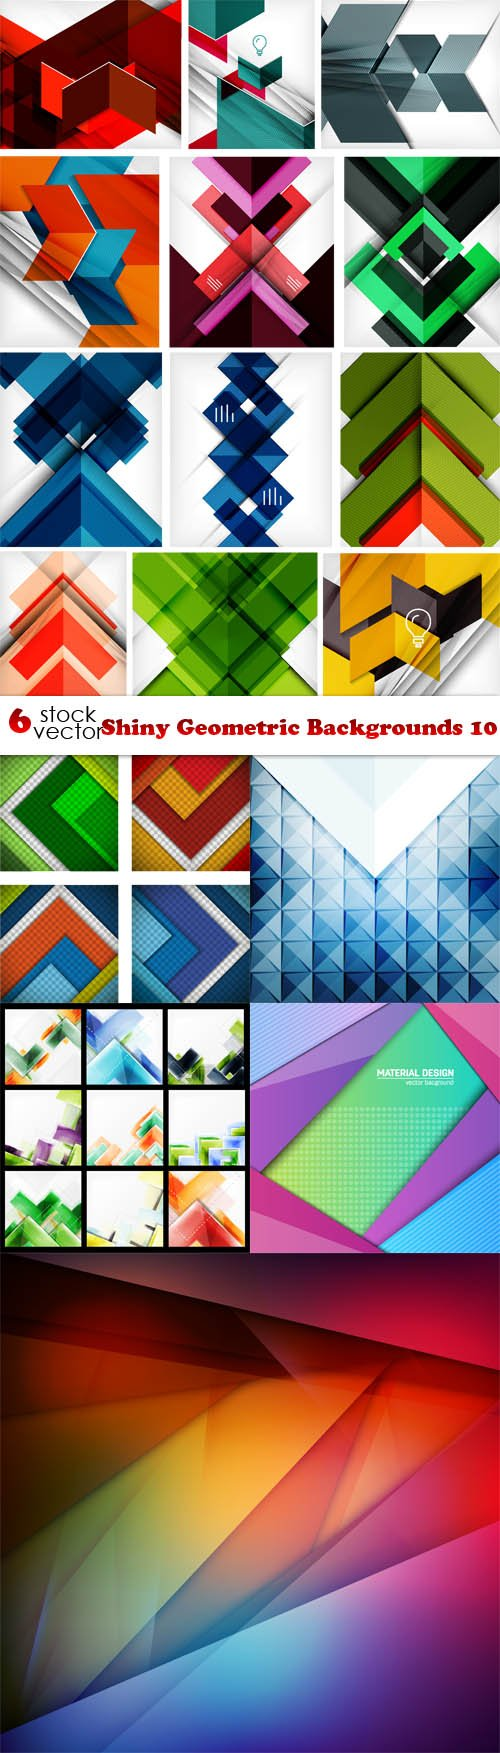 Vectors - Shiny Geometric Backgrounds 10